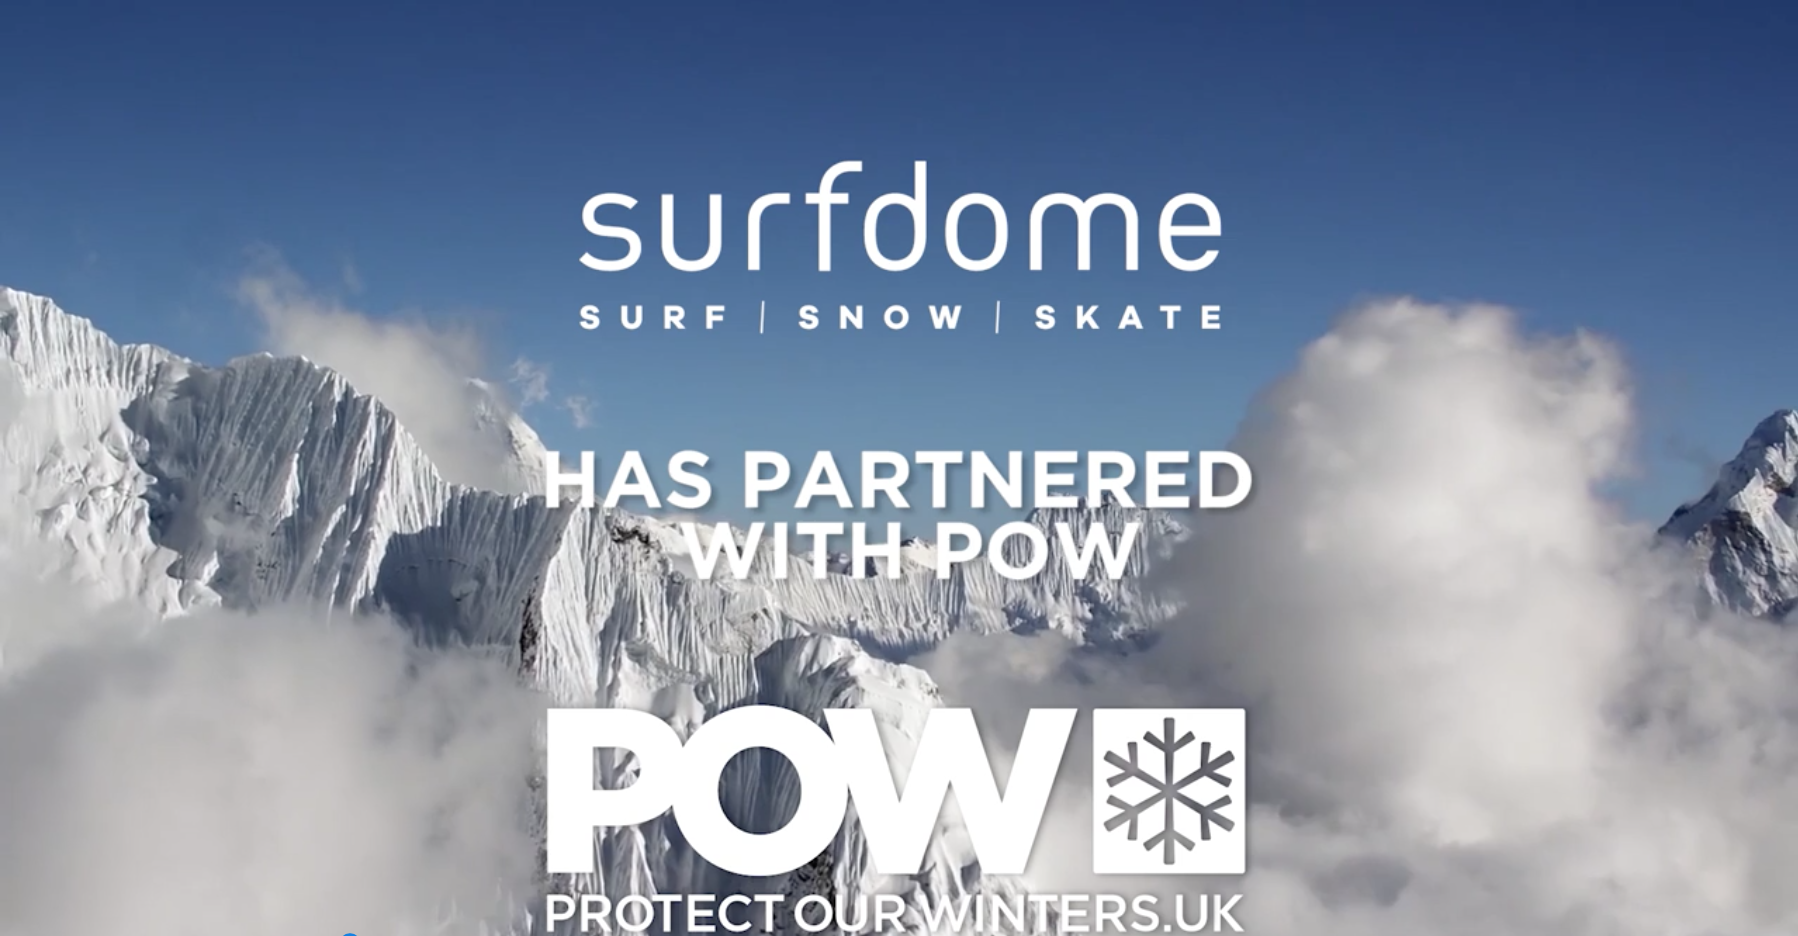 Surfdome partners with POW UK